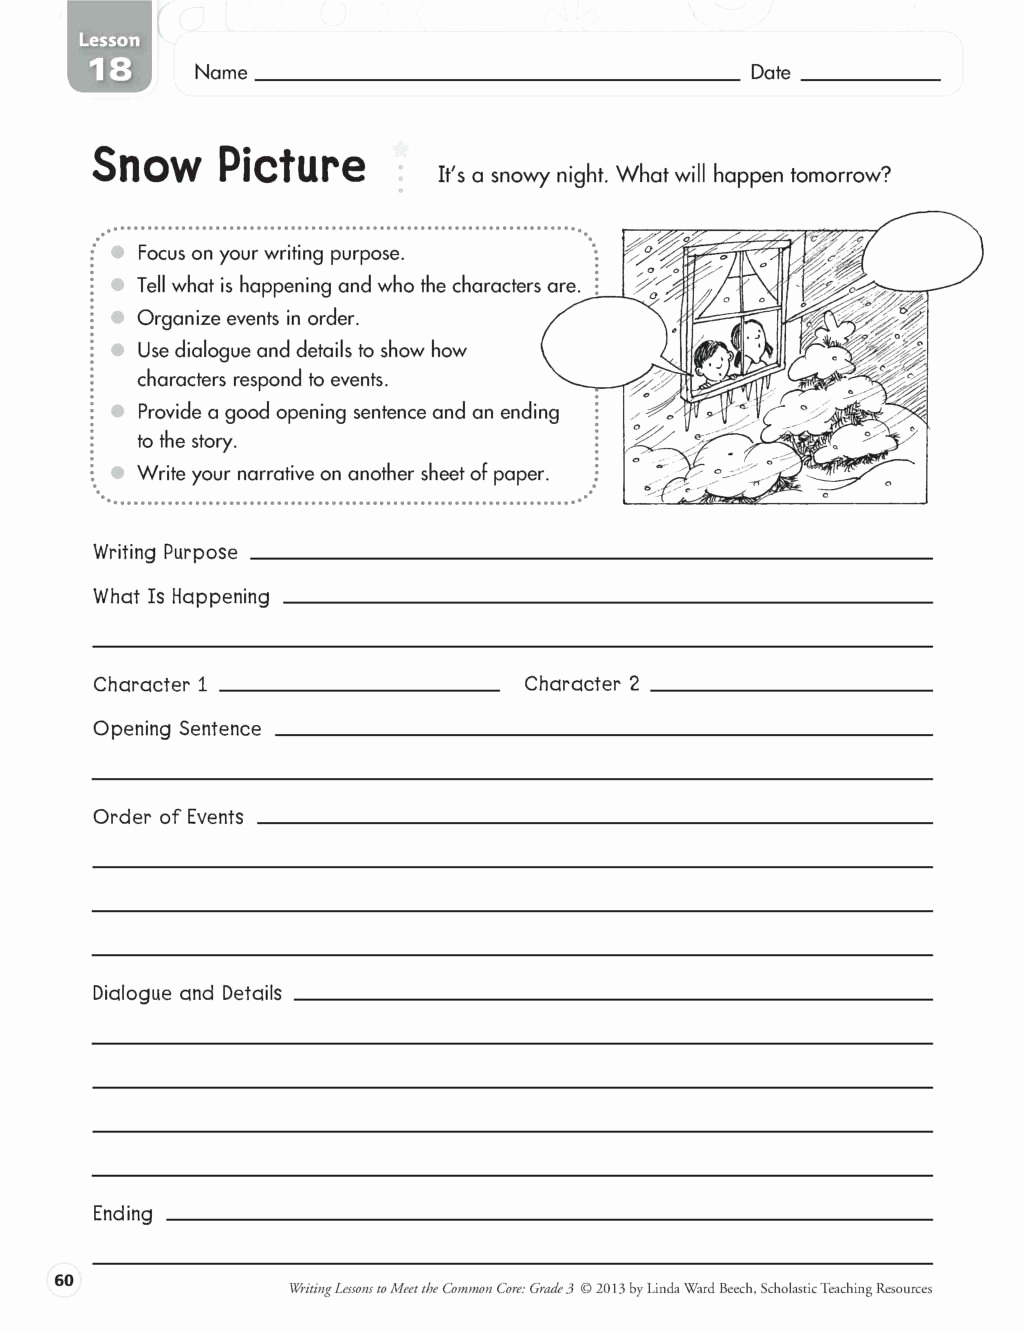 Paragraph Editing Worksheets 4th Grade New Nova Hunting the Elements Worksheet